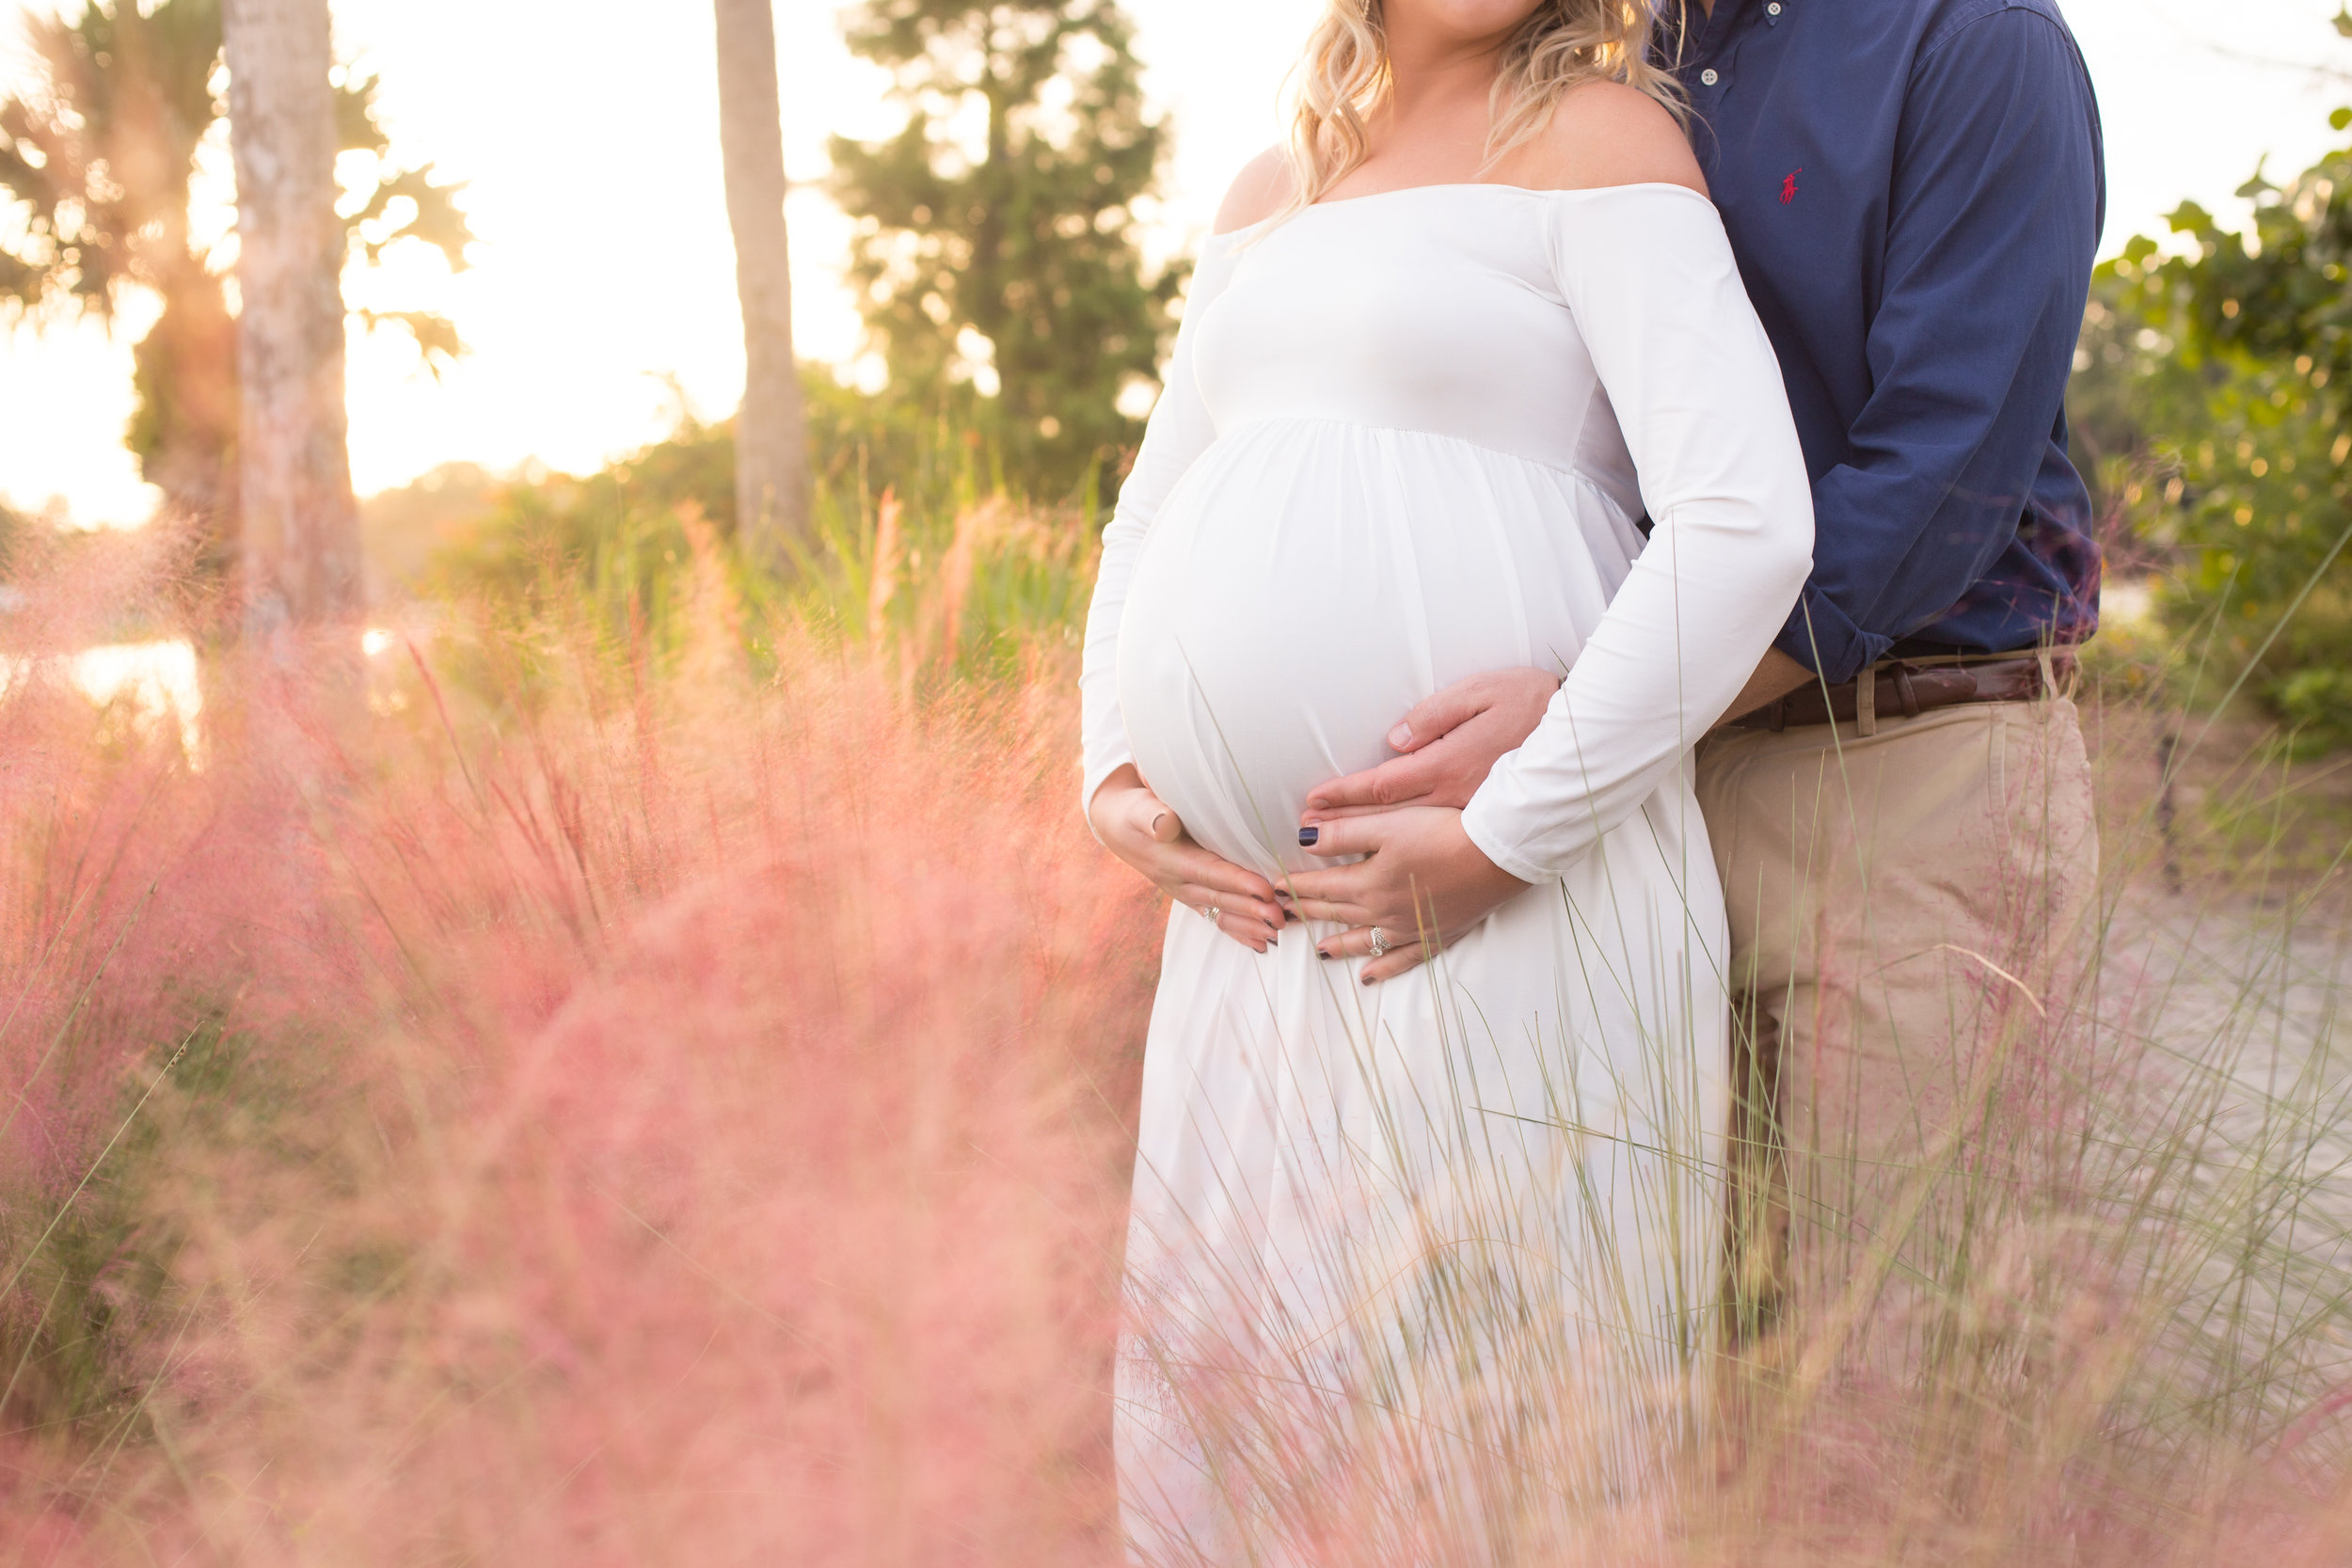 028_Maternity Portraits_Color-mw.jpg